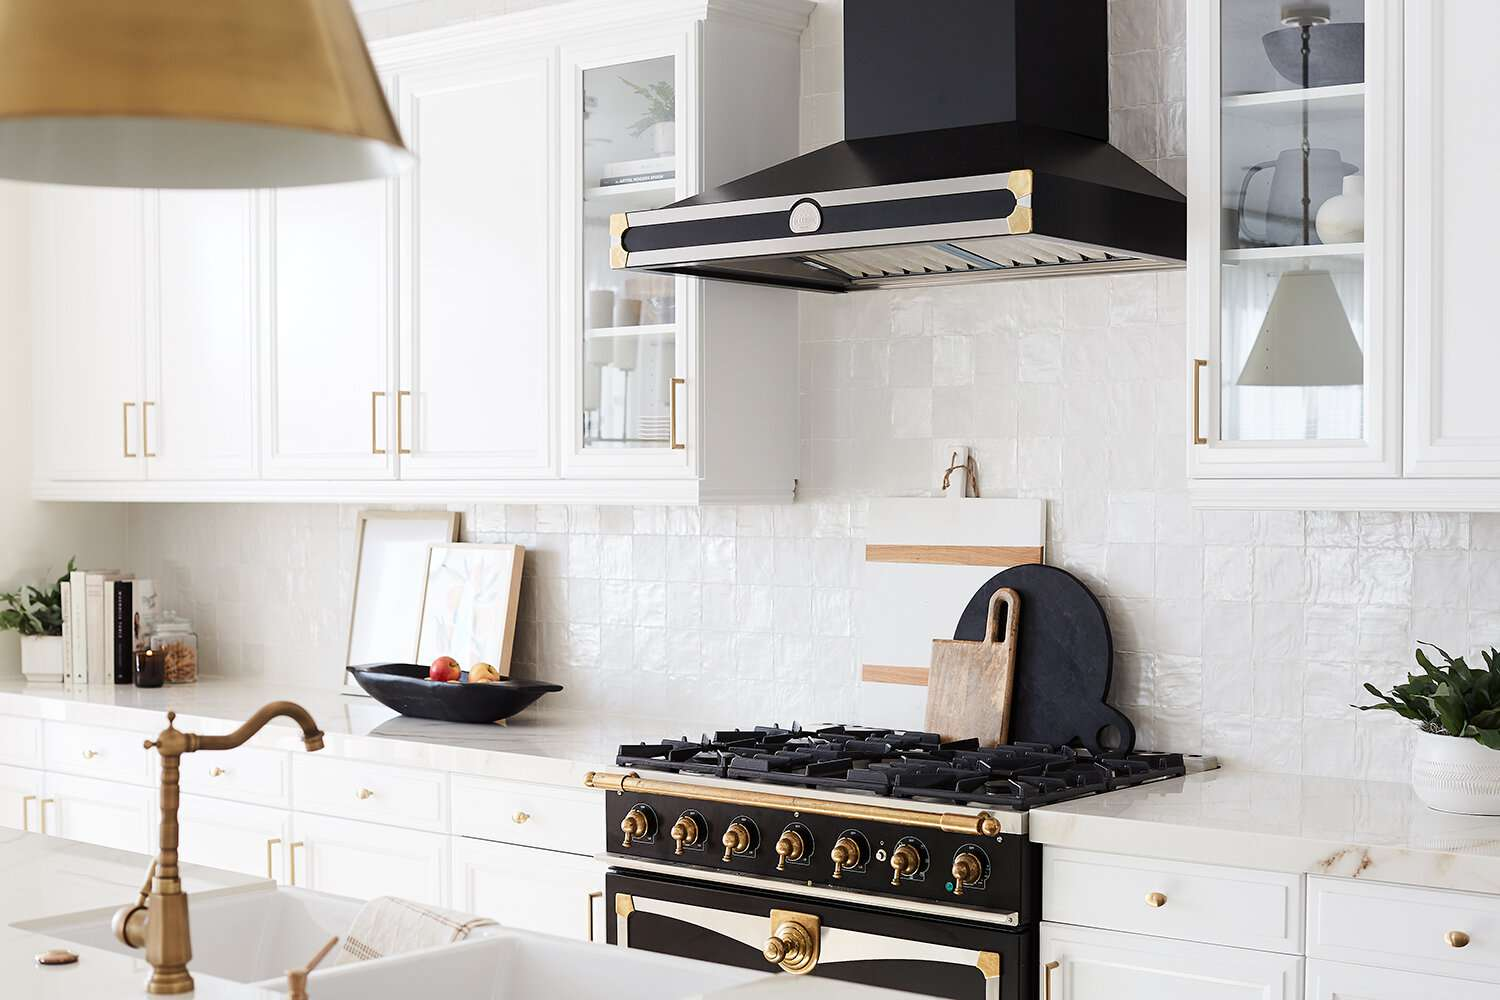 best kitchen ideas - statement stove top and hood